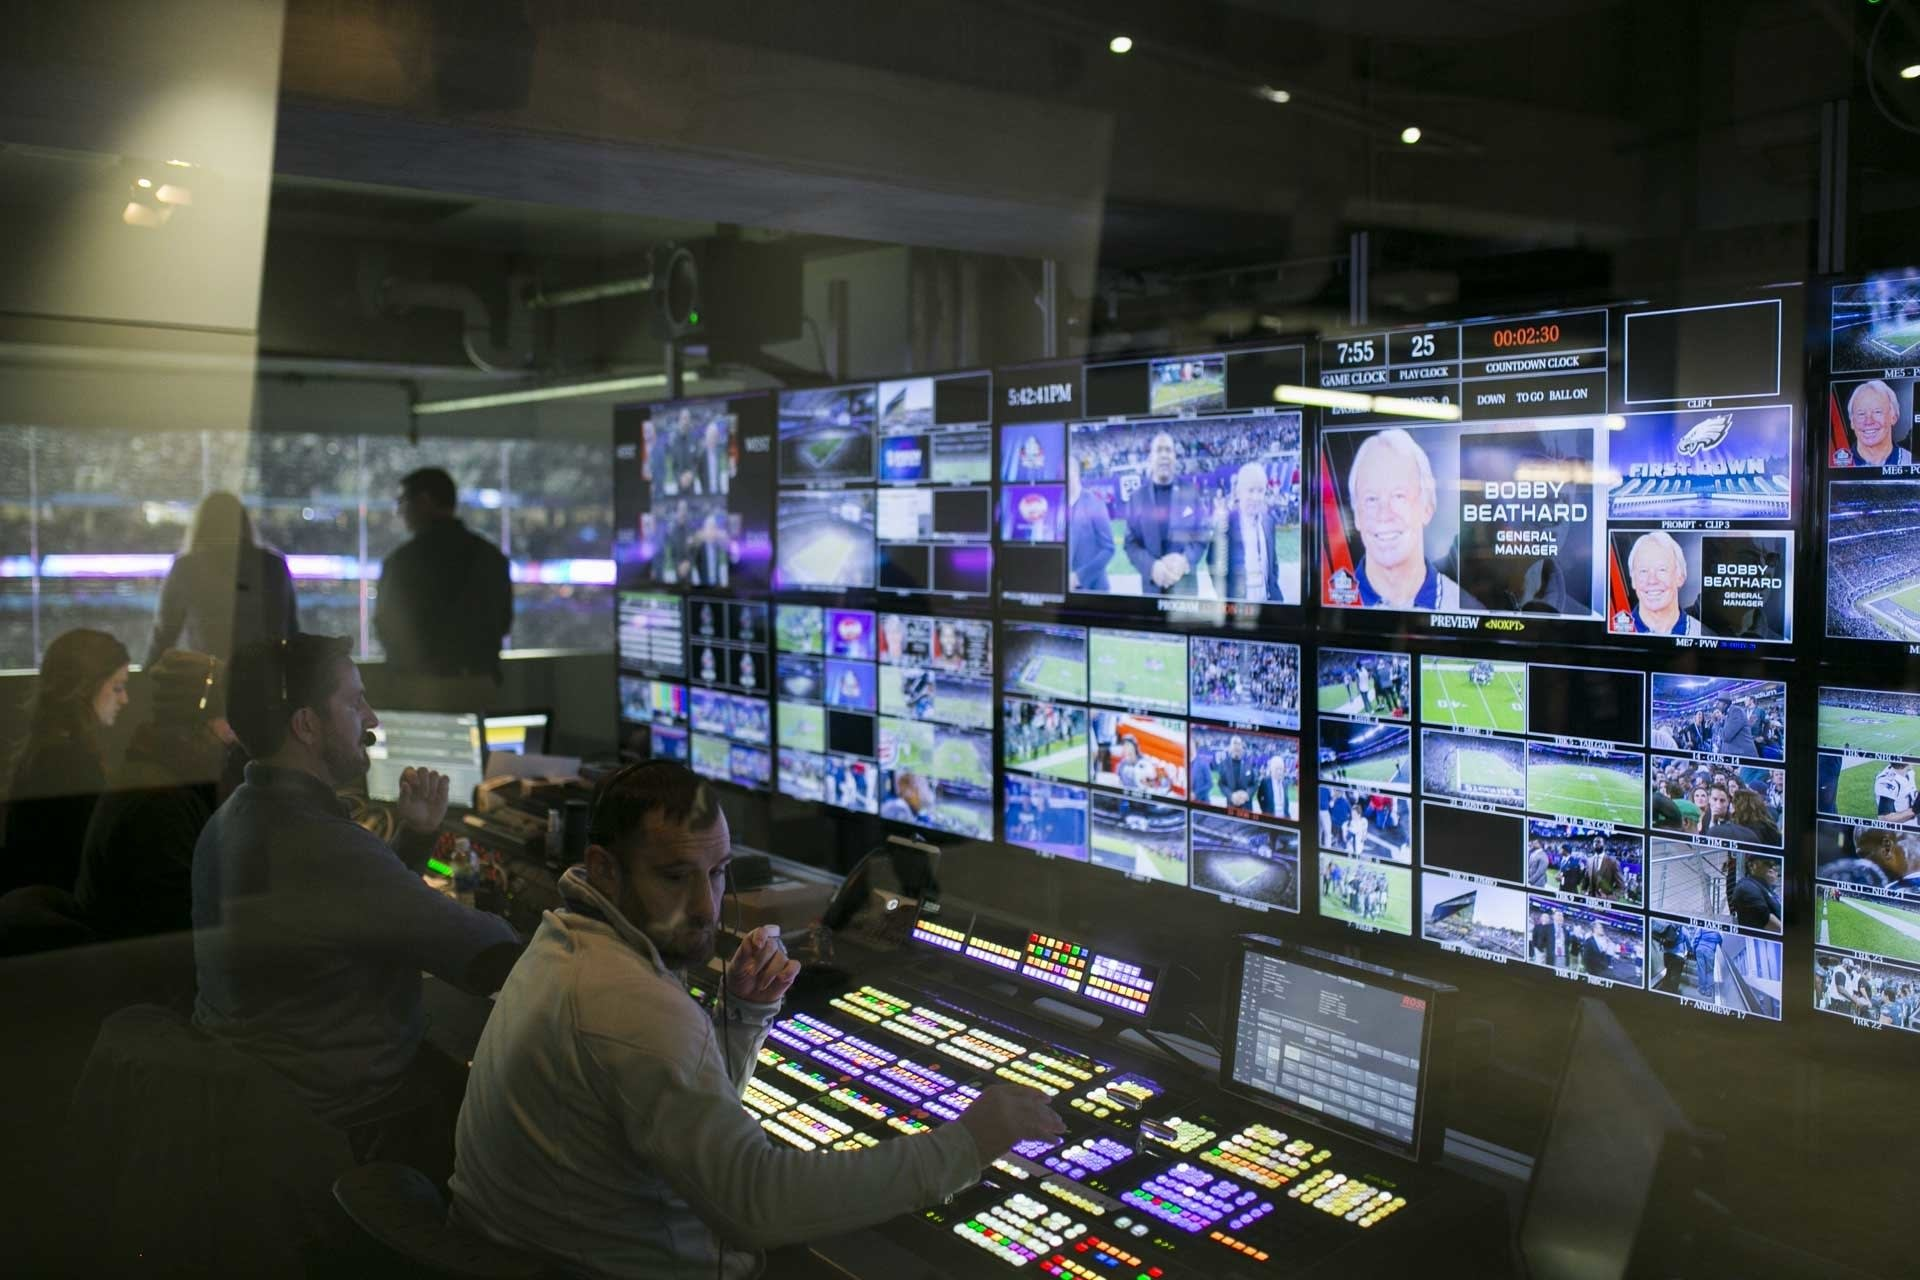 Every camera angle is displayed on monitors inside of a control room.